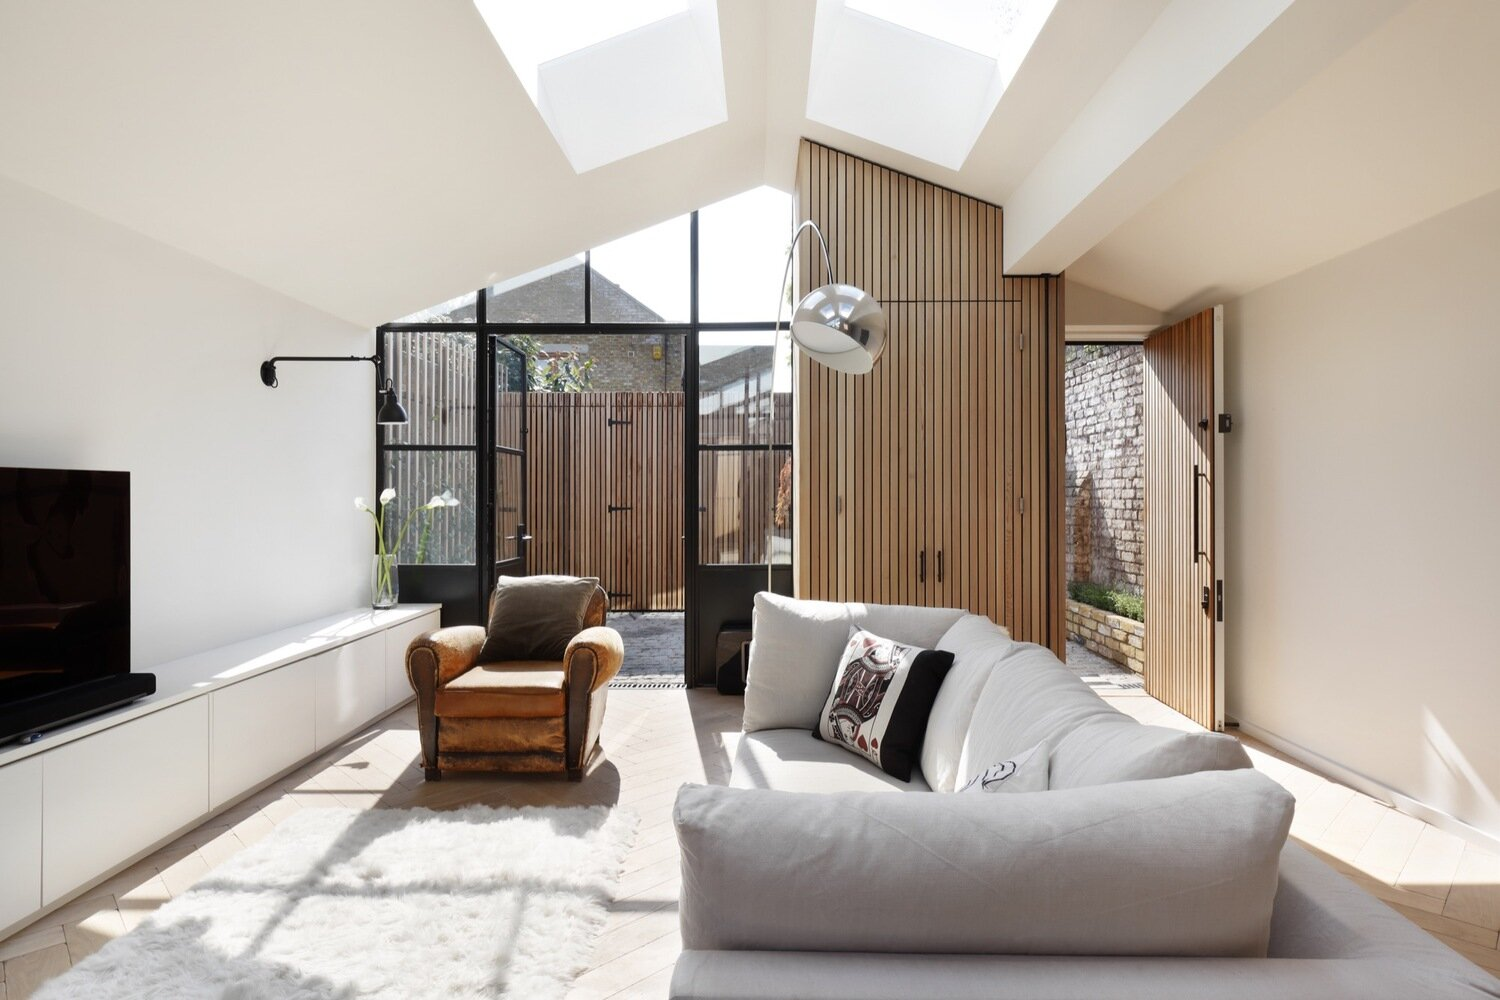 The-Courtyard-House-De-Rosee-Sa-United-Kingdom-Living-Room-Humble-Homes